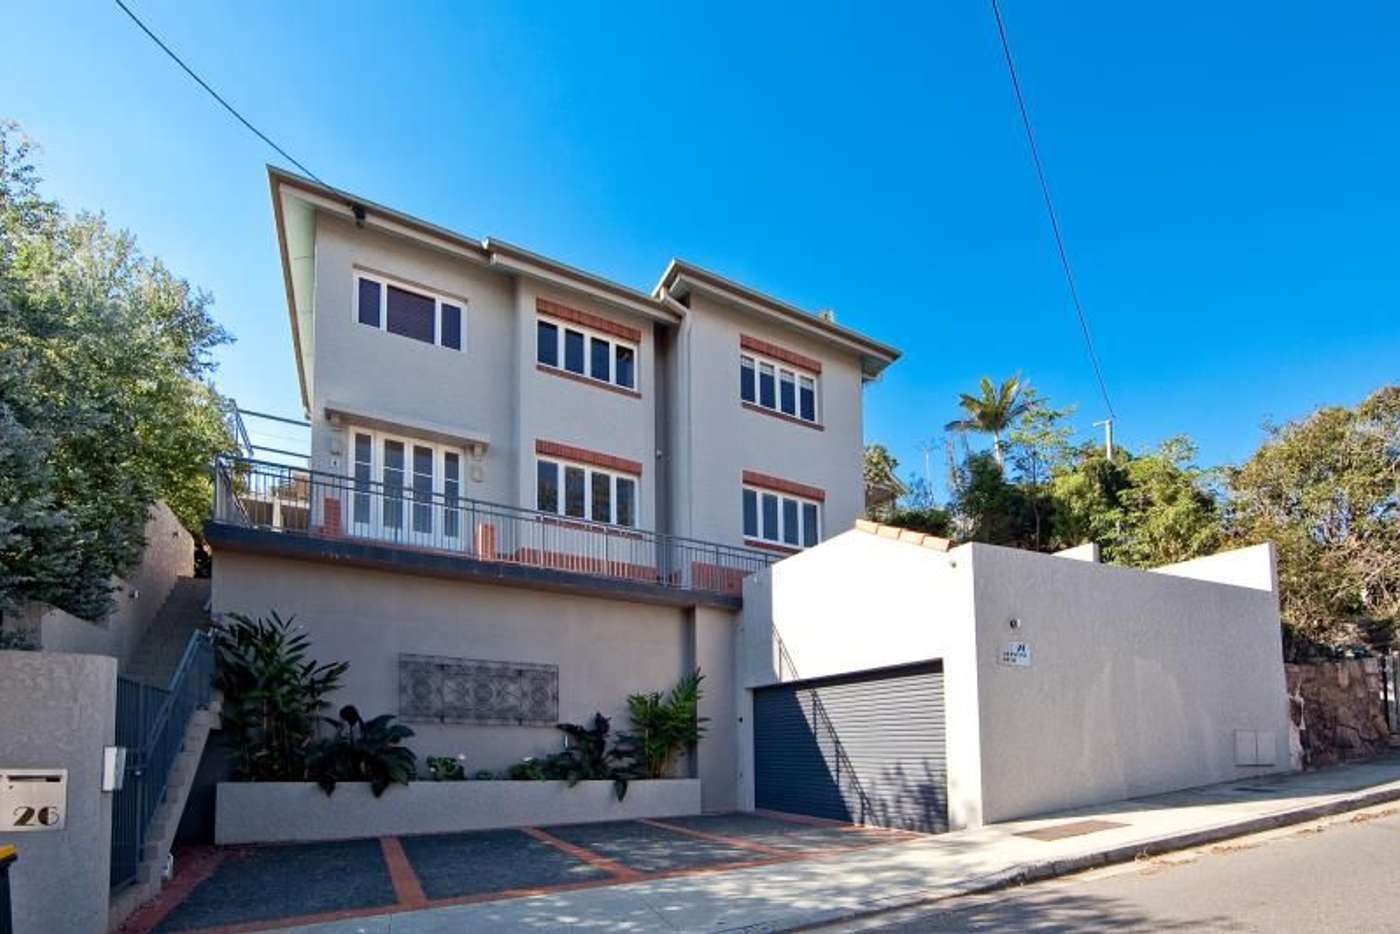 Main view of Homely apartment listing, 1/26 Crescent Road, Hamilton QLD 4007